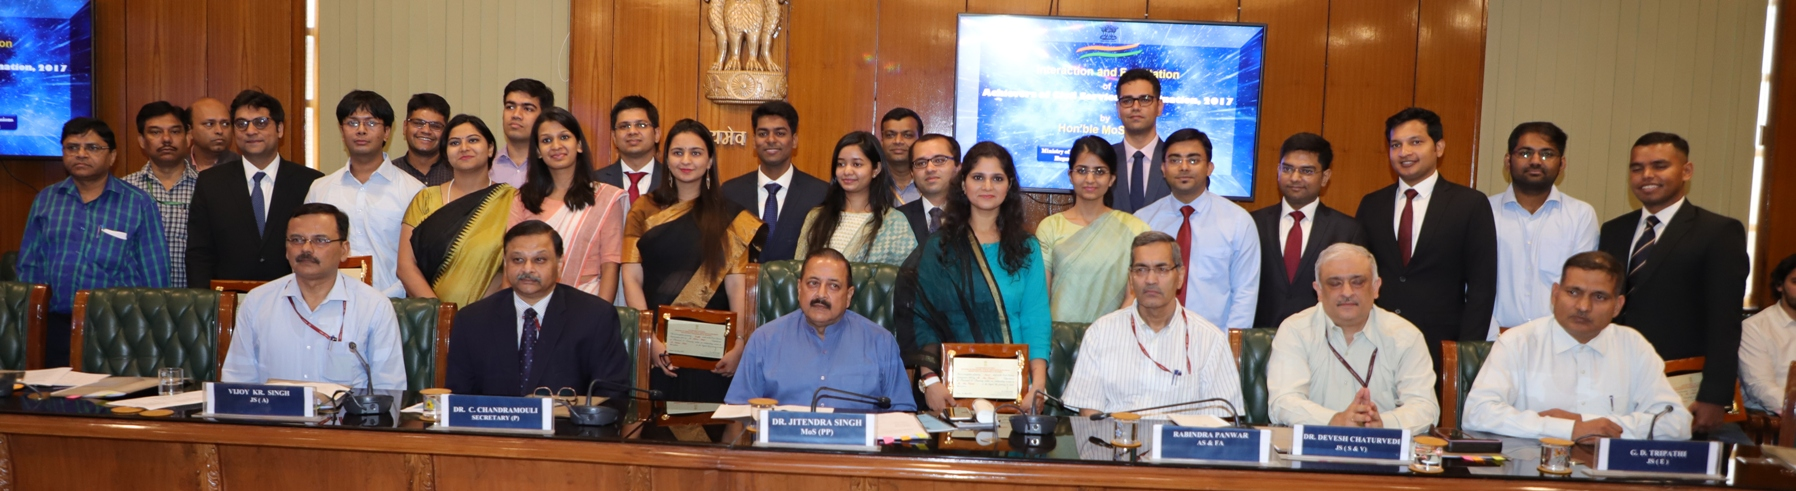 Interaction and felicitation of achievers of Civil Services Examination 2017.